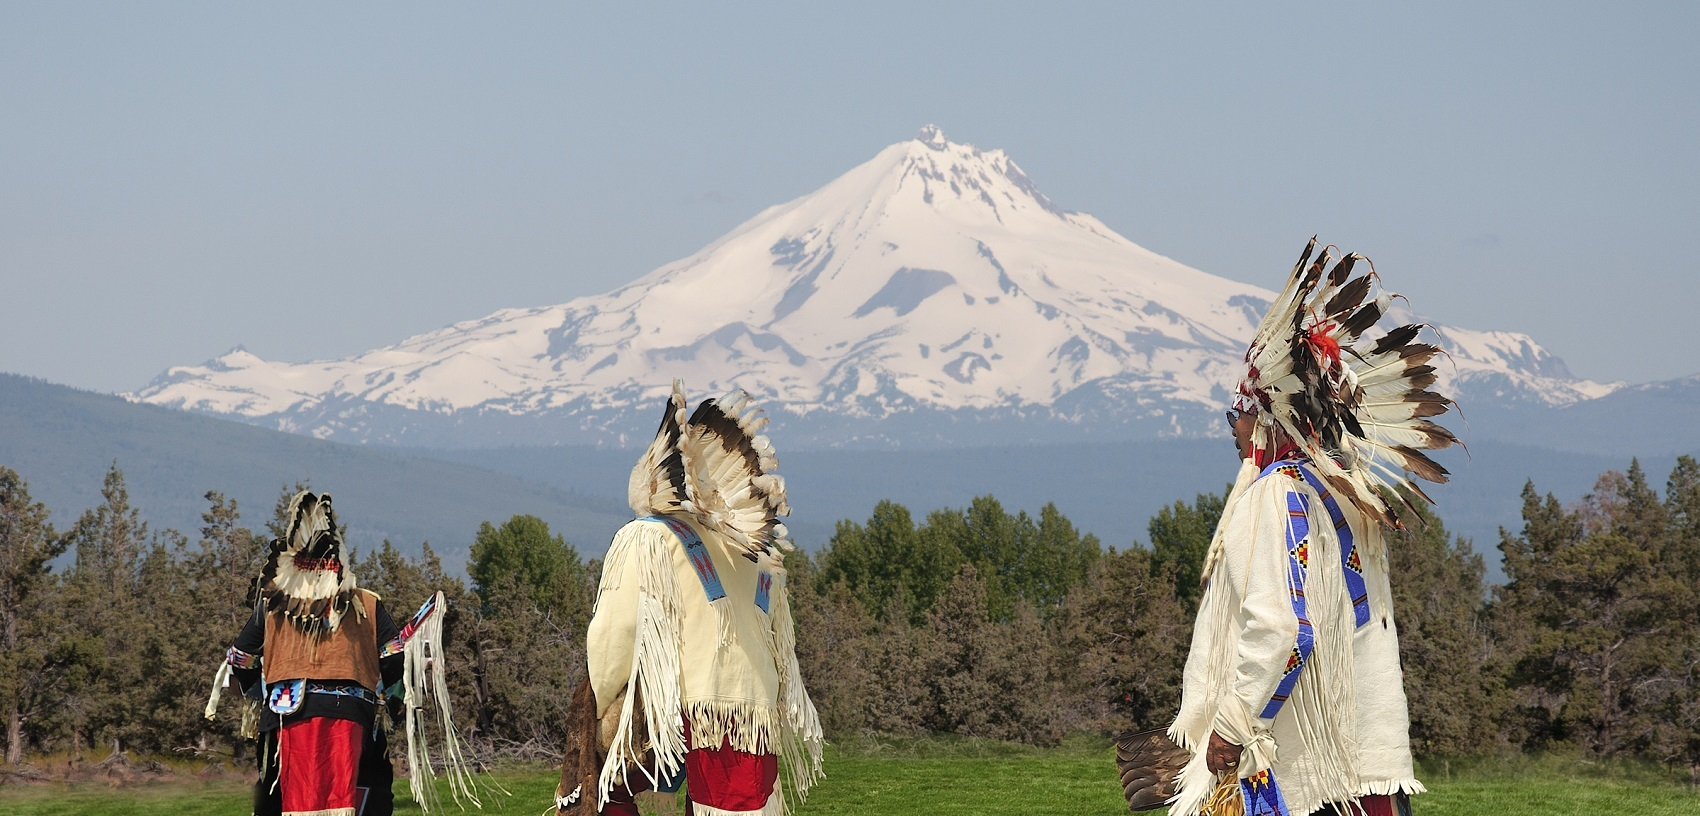 Three Chiefs, Mount Jefferson near Redmond, Oregon, USA